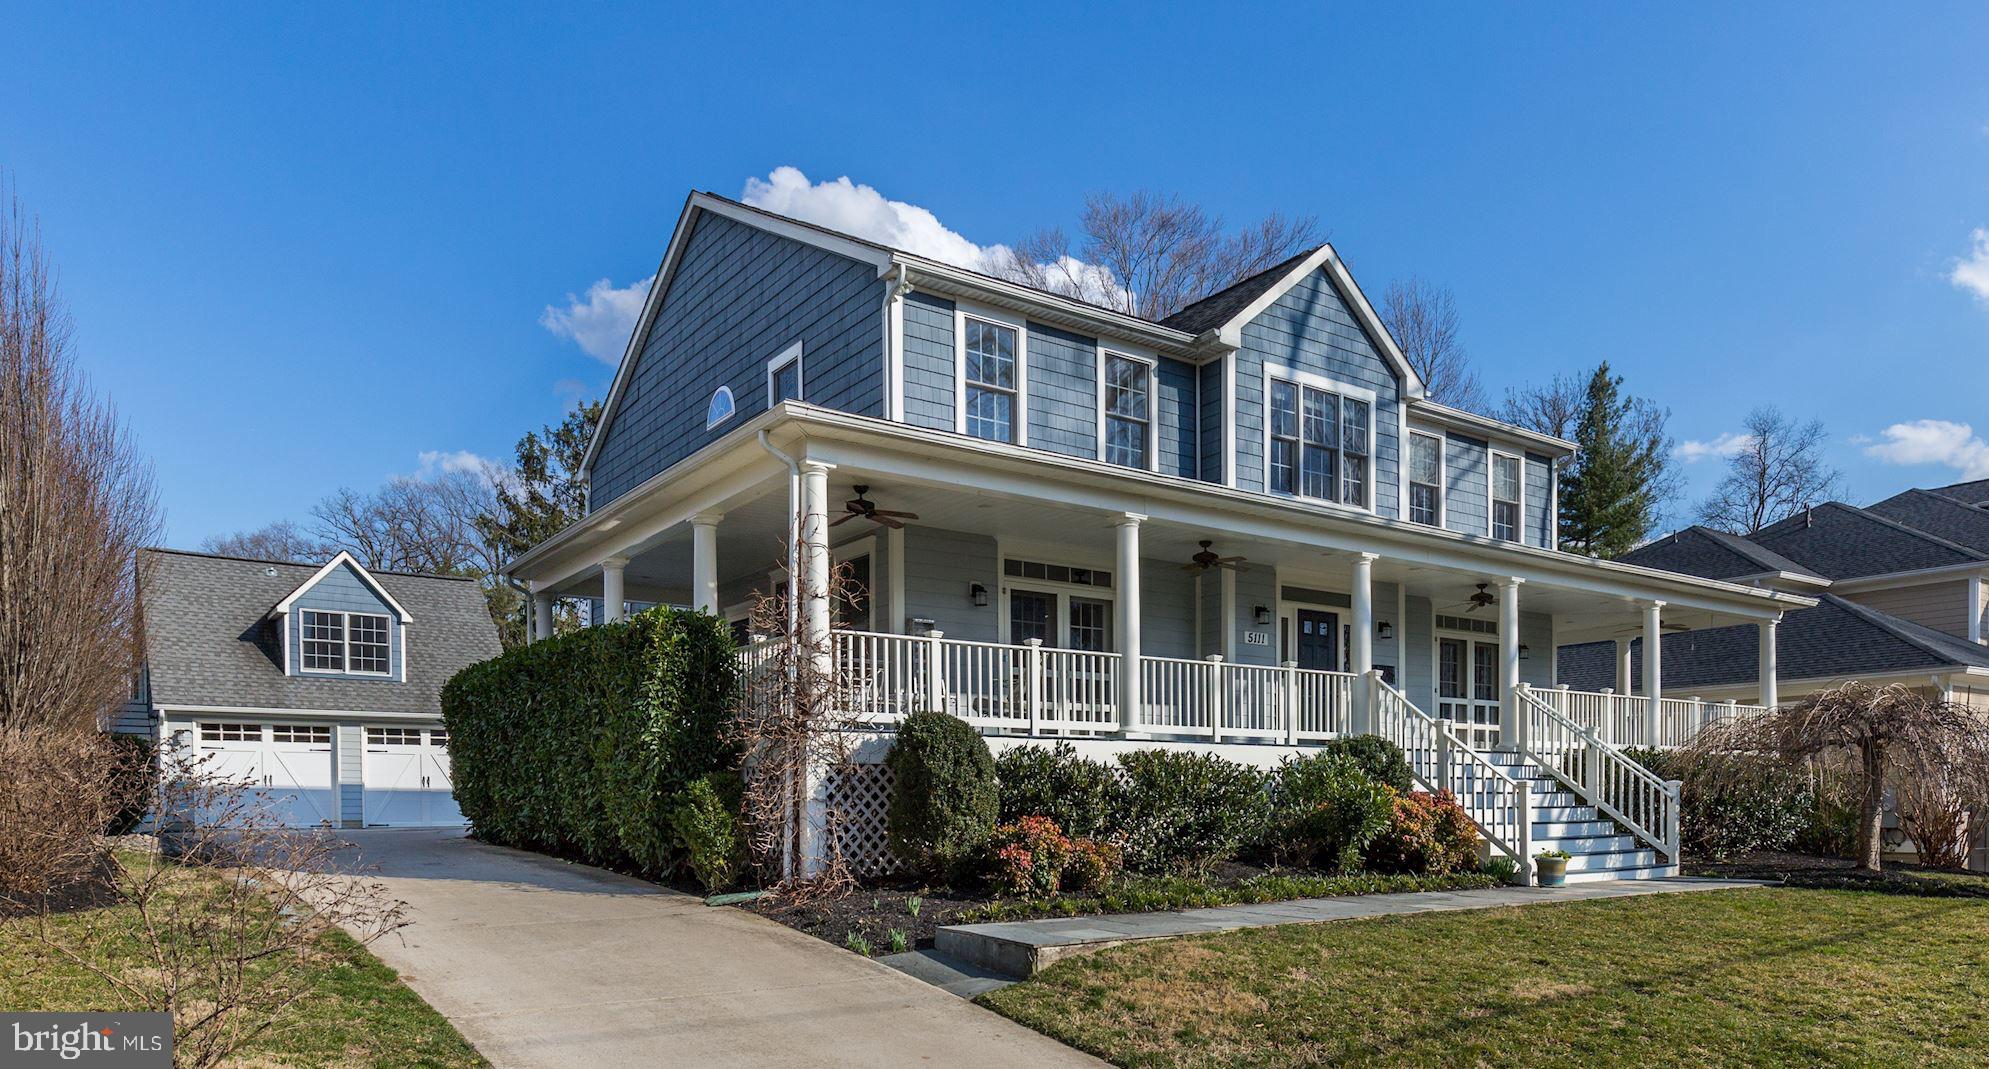 5111 WEHAWKEN ROAD, BETHESDA, MD 20816